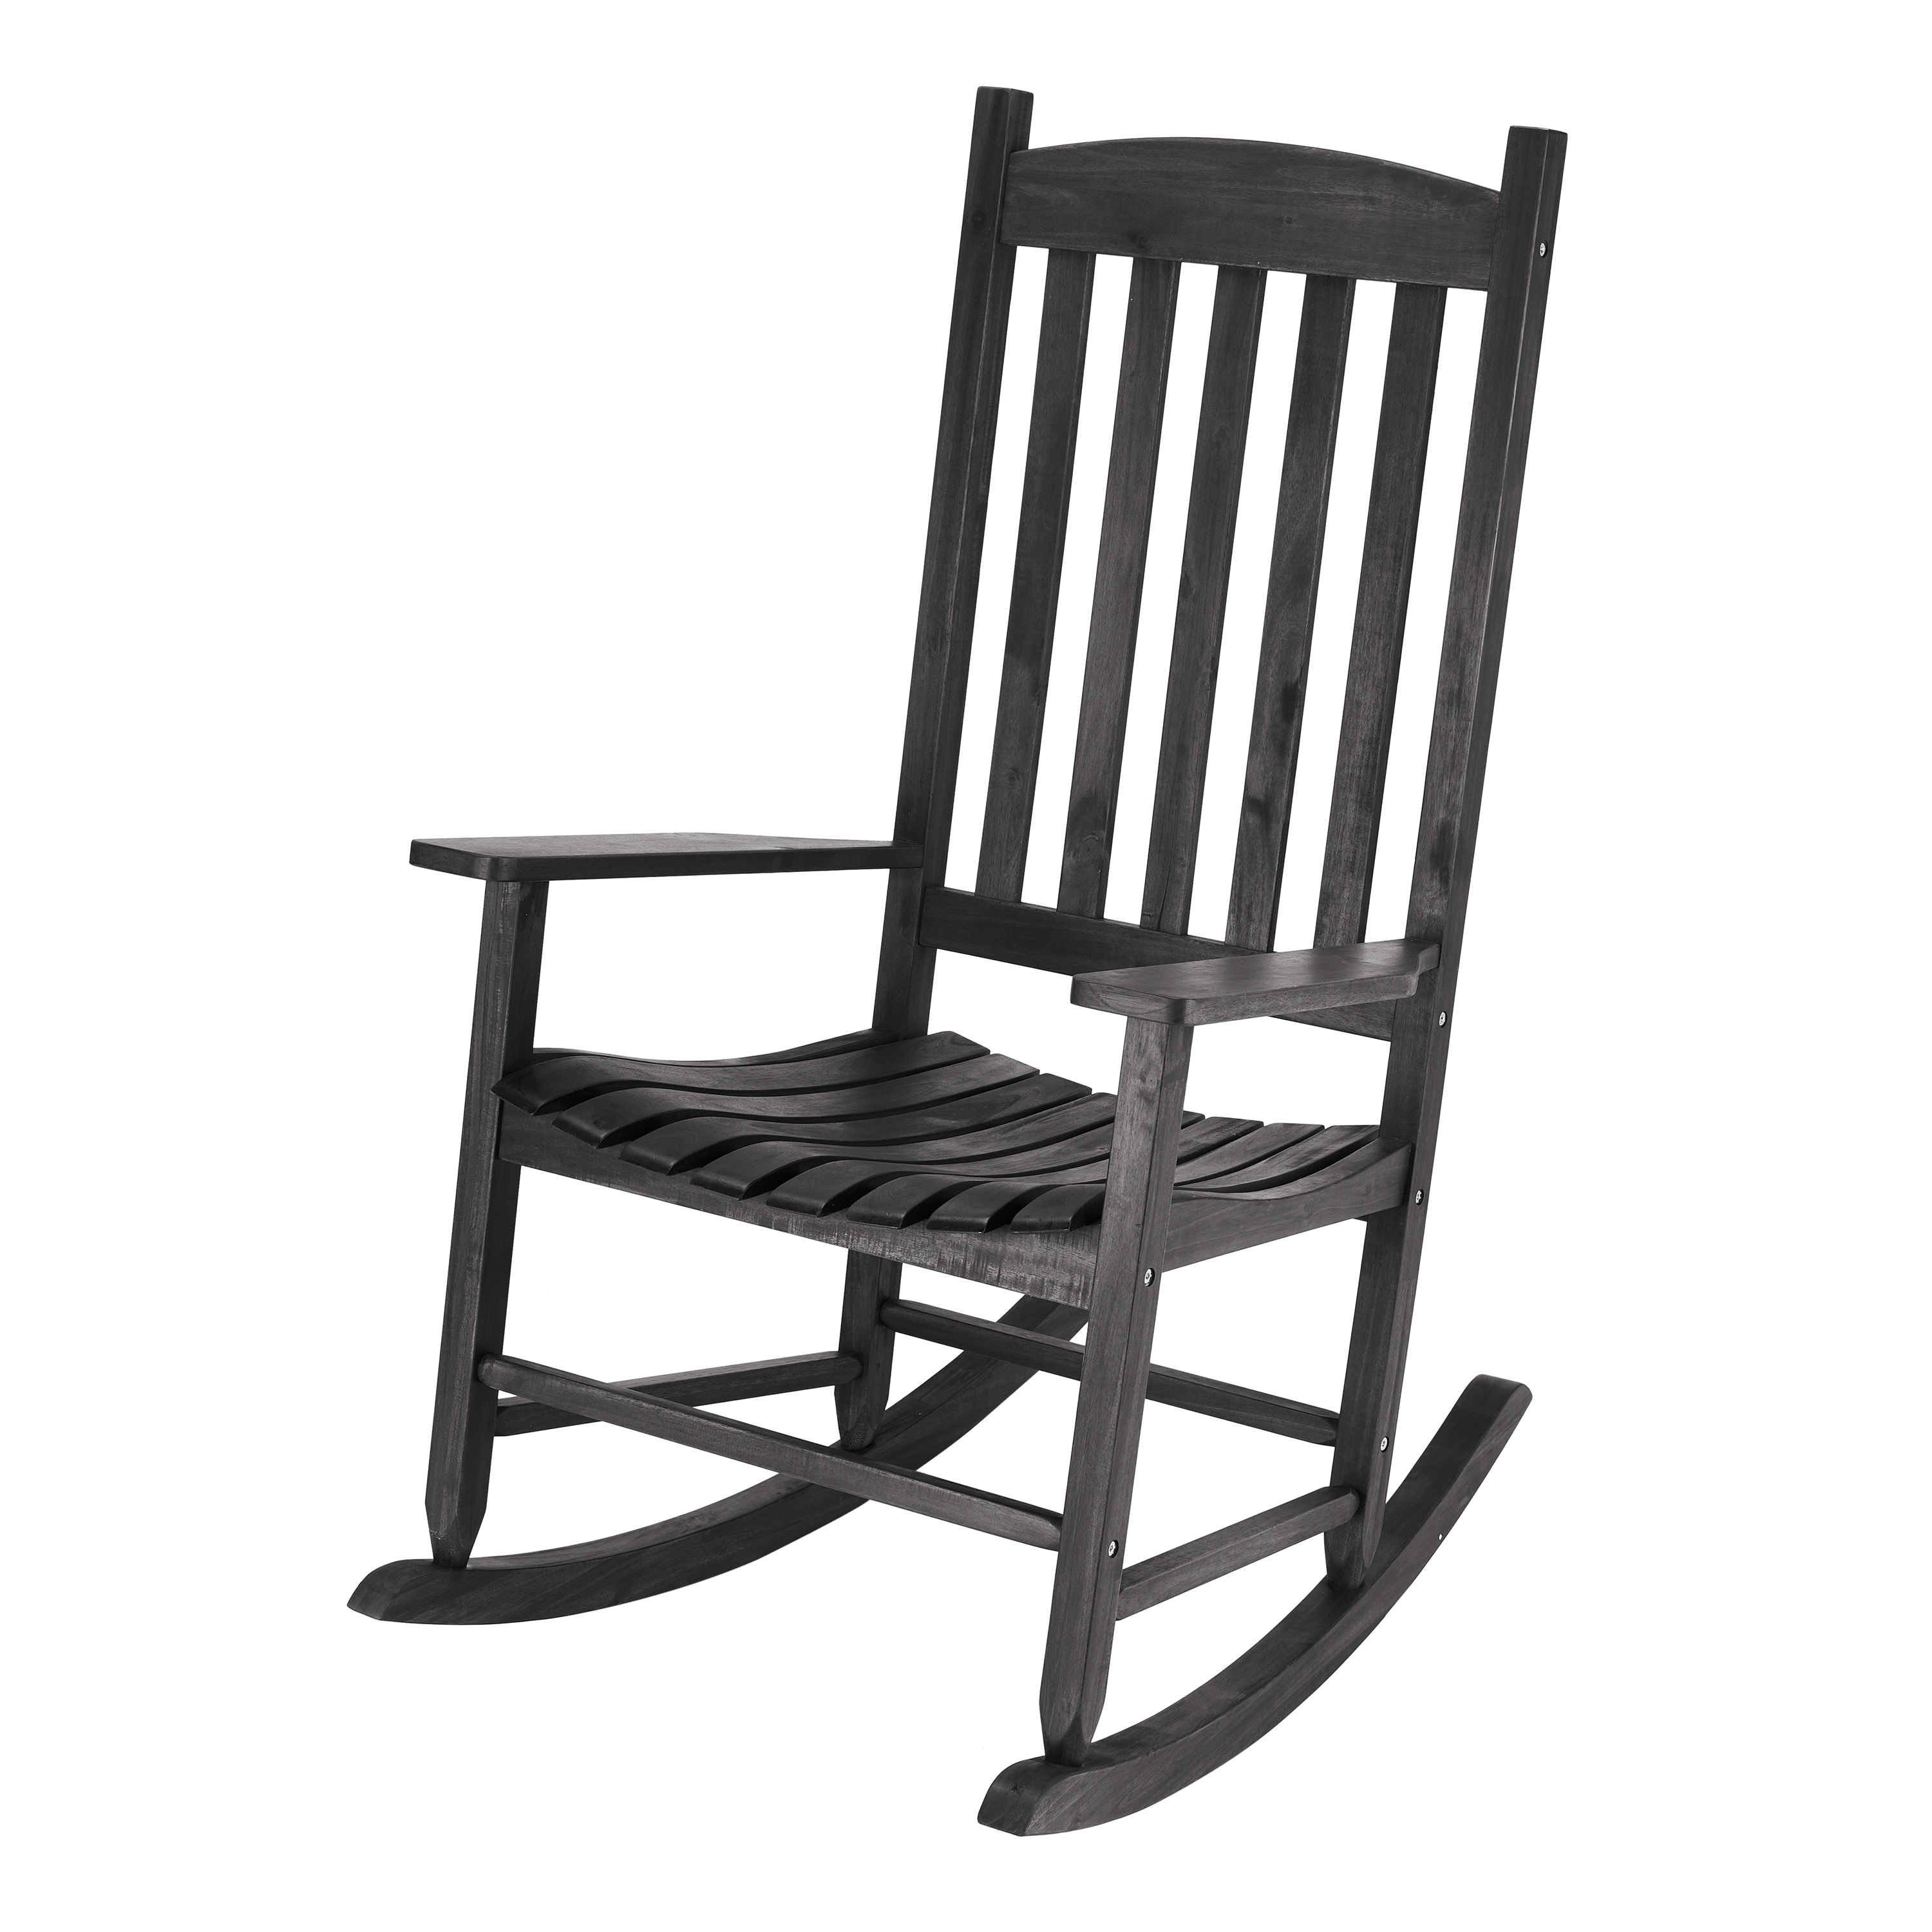 Mainstays Black Solid Wood Slat Outdoor Rocking Chair